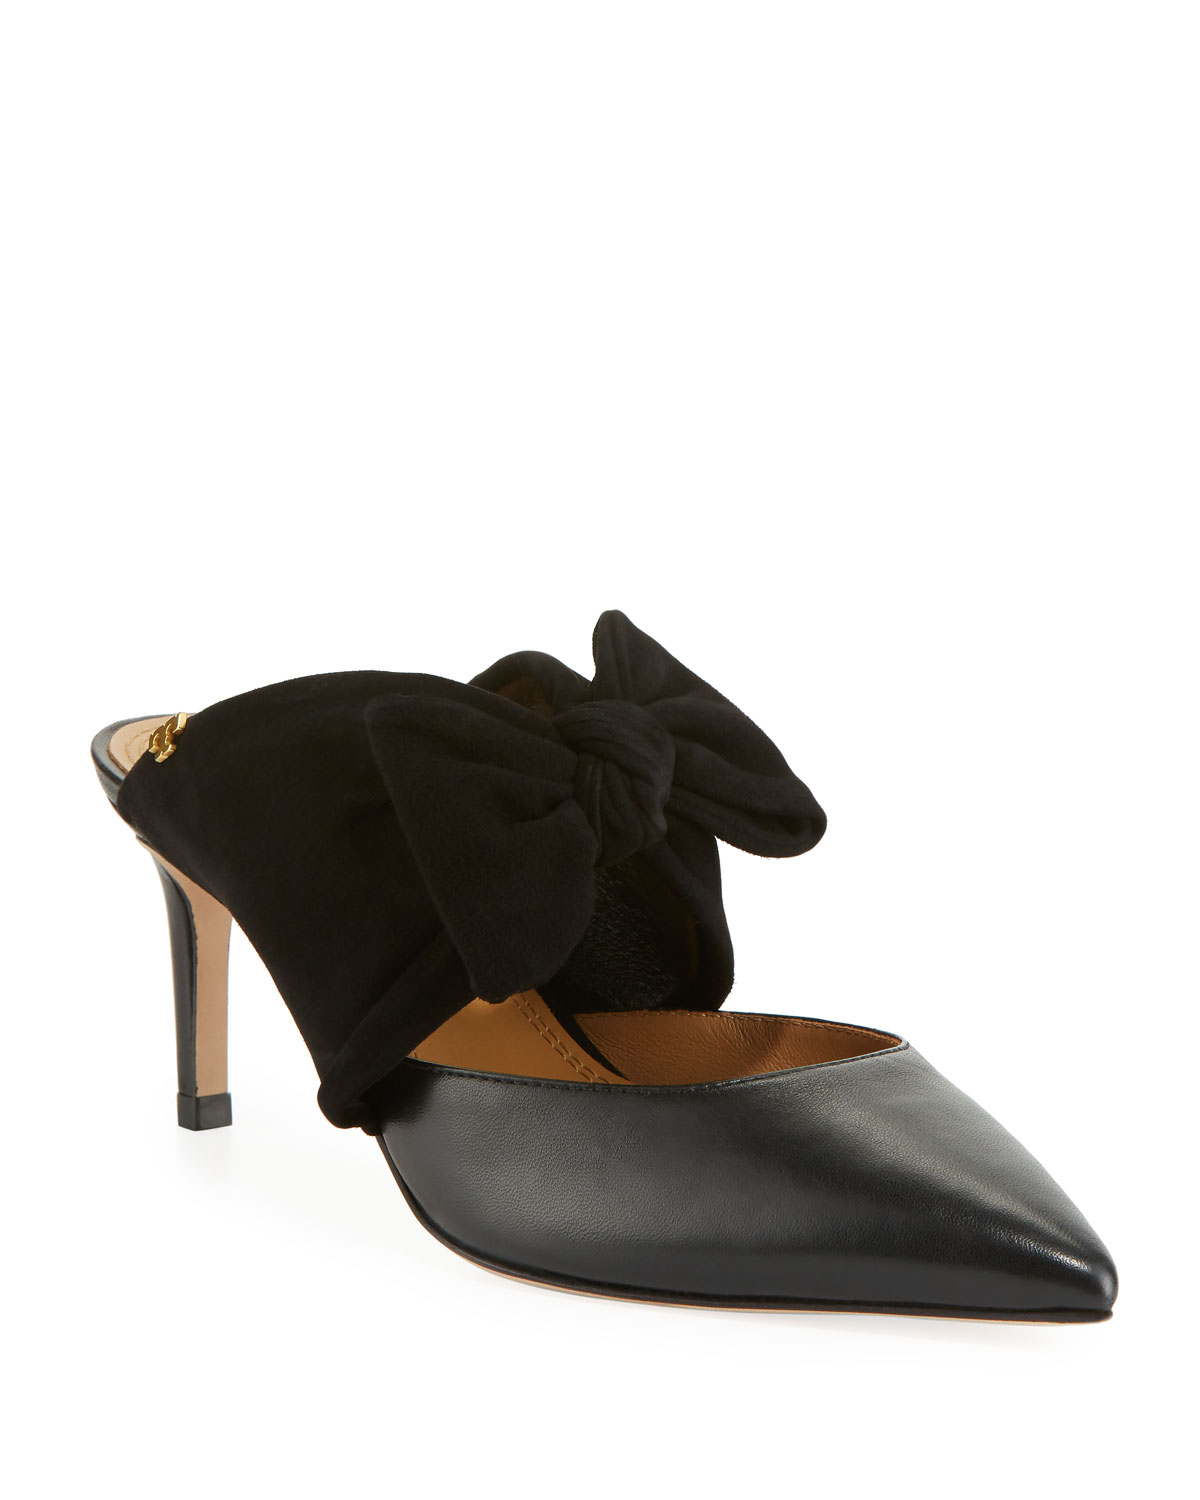 ab1026f60213 Tory Burch Eleanor 65mm Mules with Bow